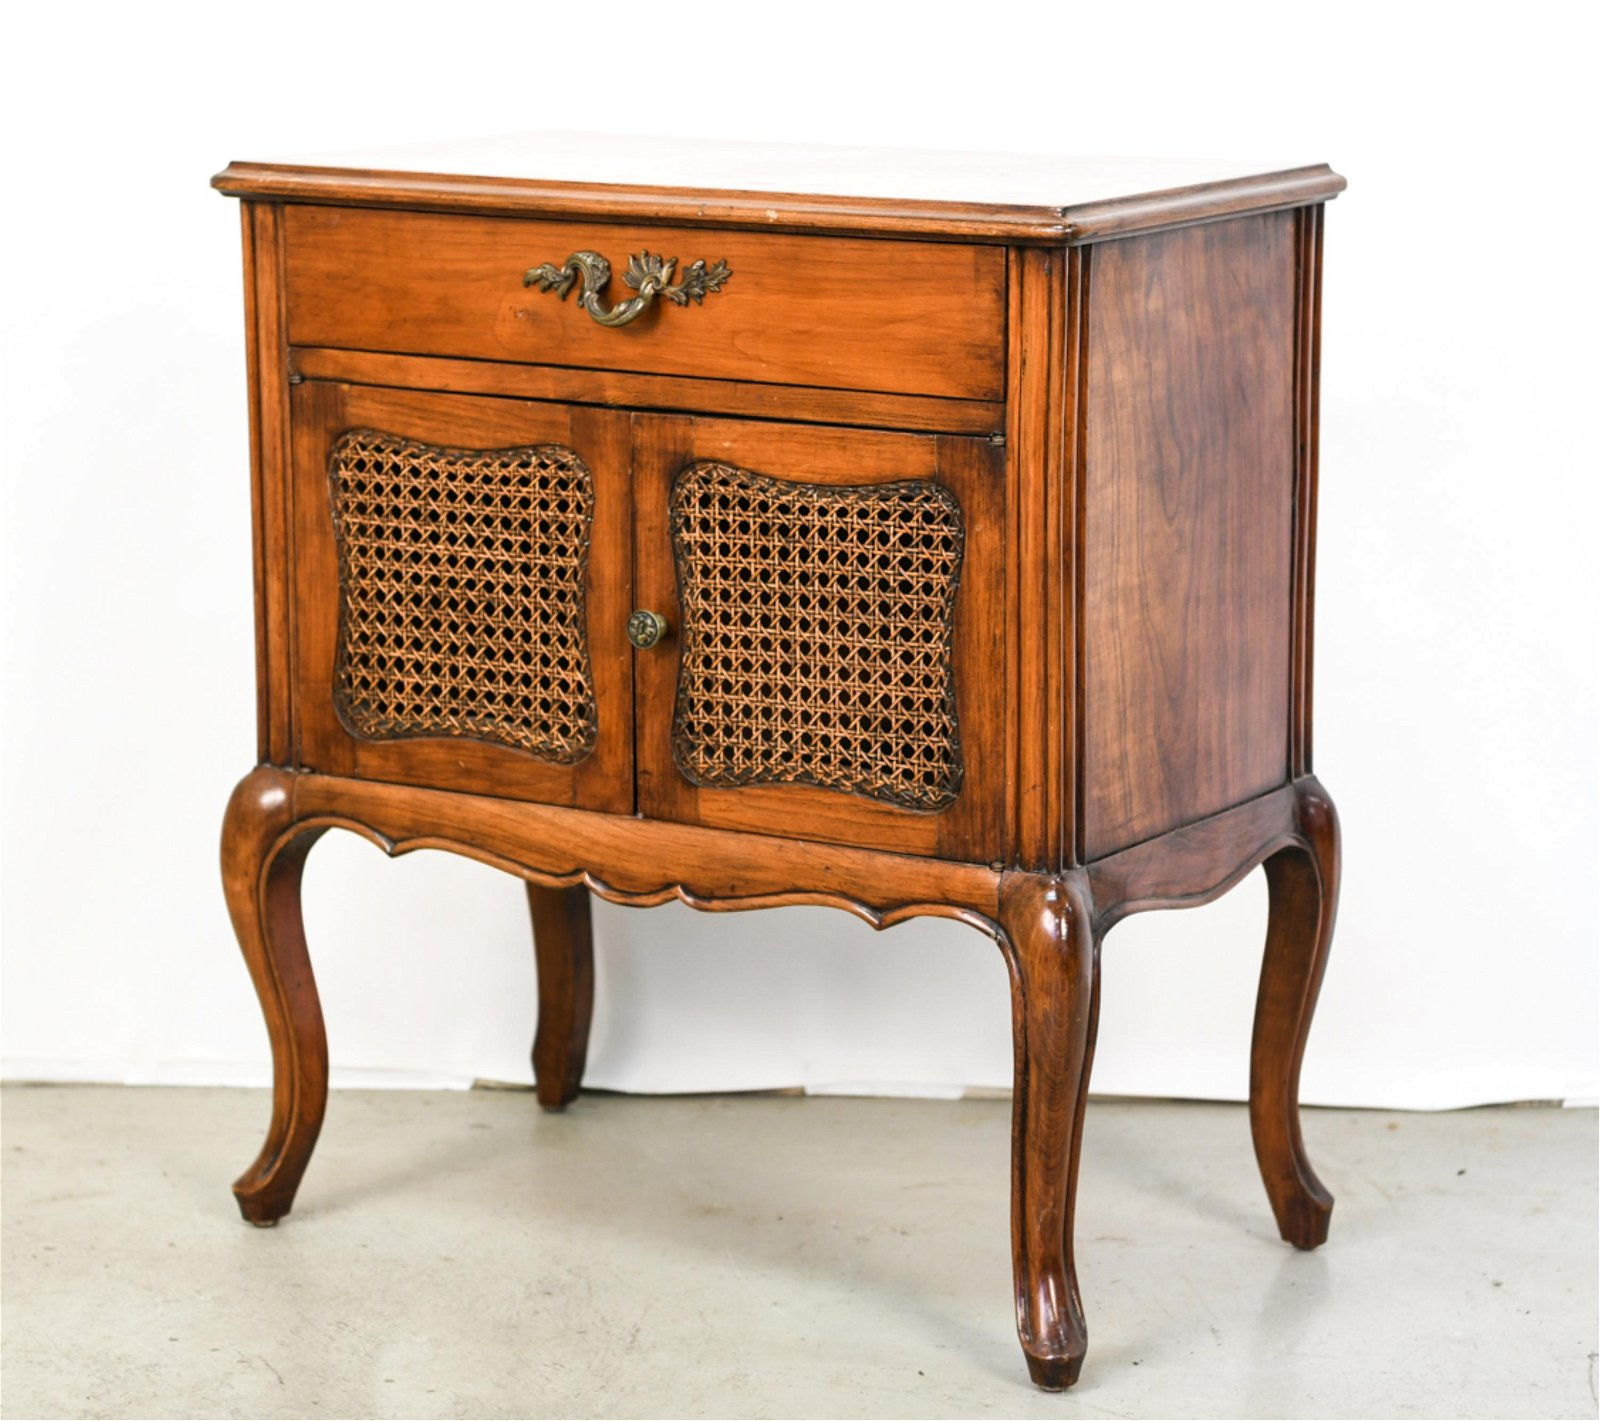 SMALL FRENCH COUNTRY STYLE CABINET